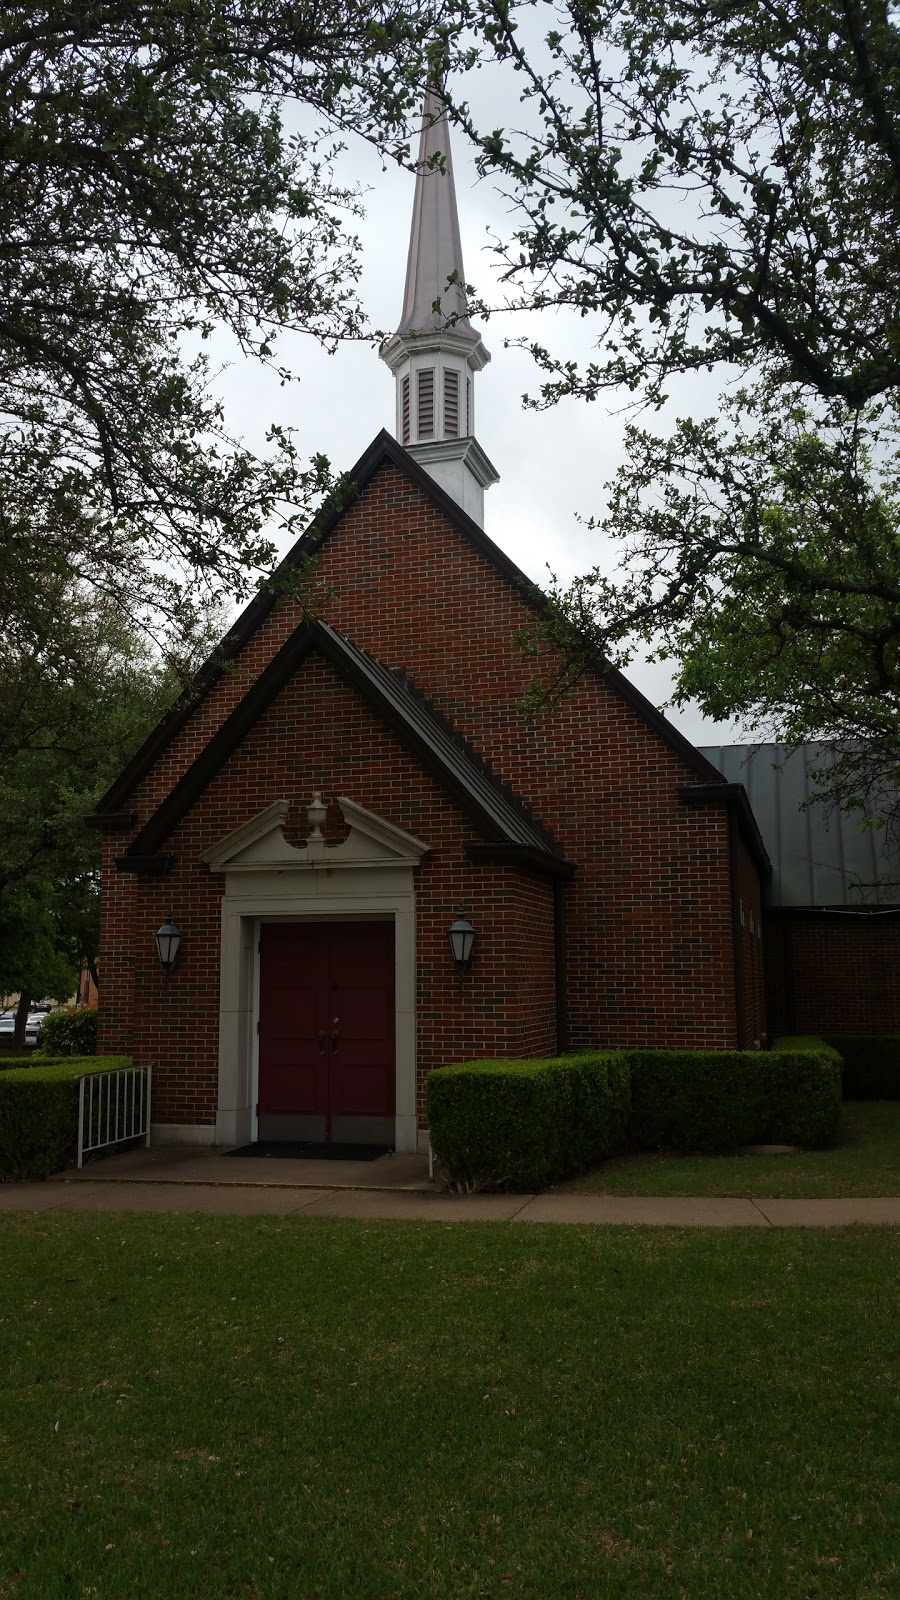 Cochran Chapel UMC - church  | Photo 1 of 10 | Address: 9027 Midway Rd, Dallas, TX 75209, USA | Phone: (214) 352-4889